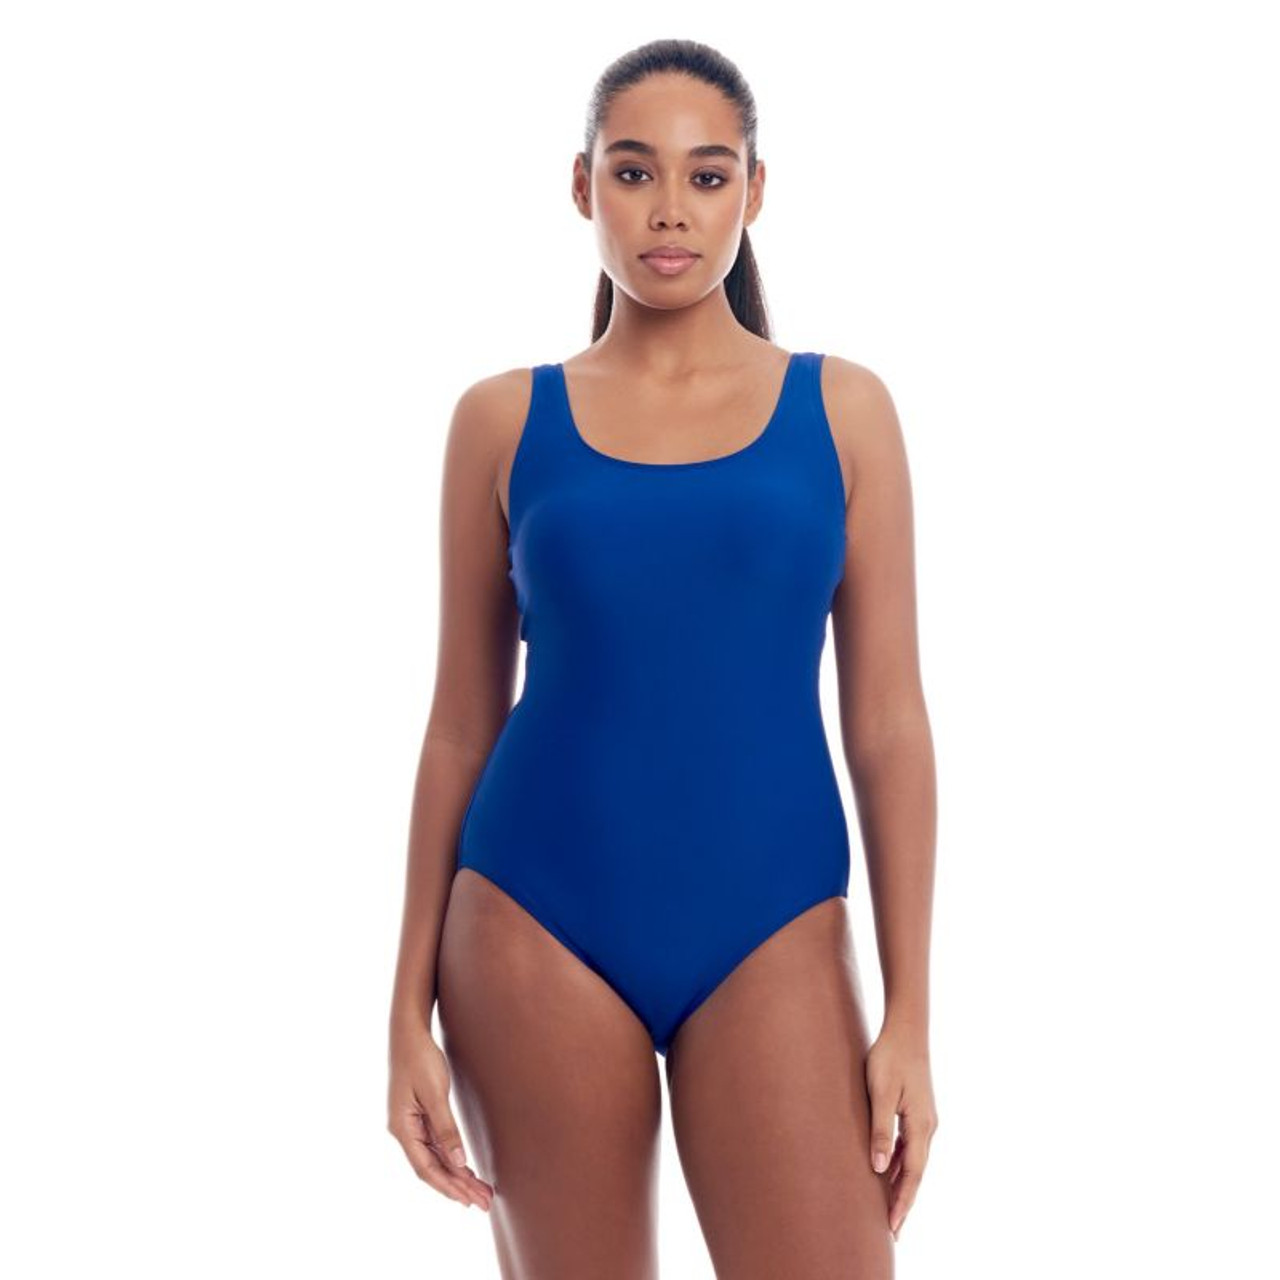 Cover Girl Women's Classic One-Piece Swimsuit